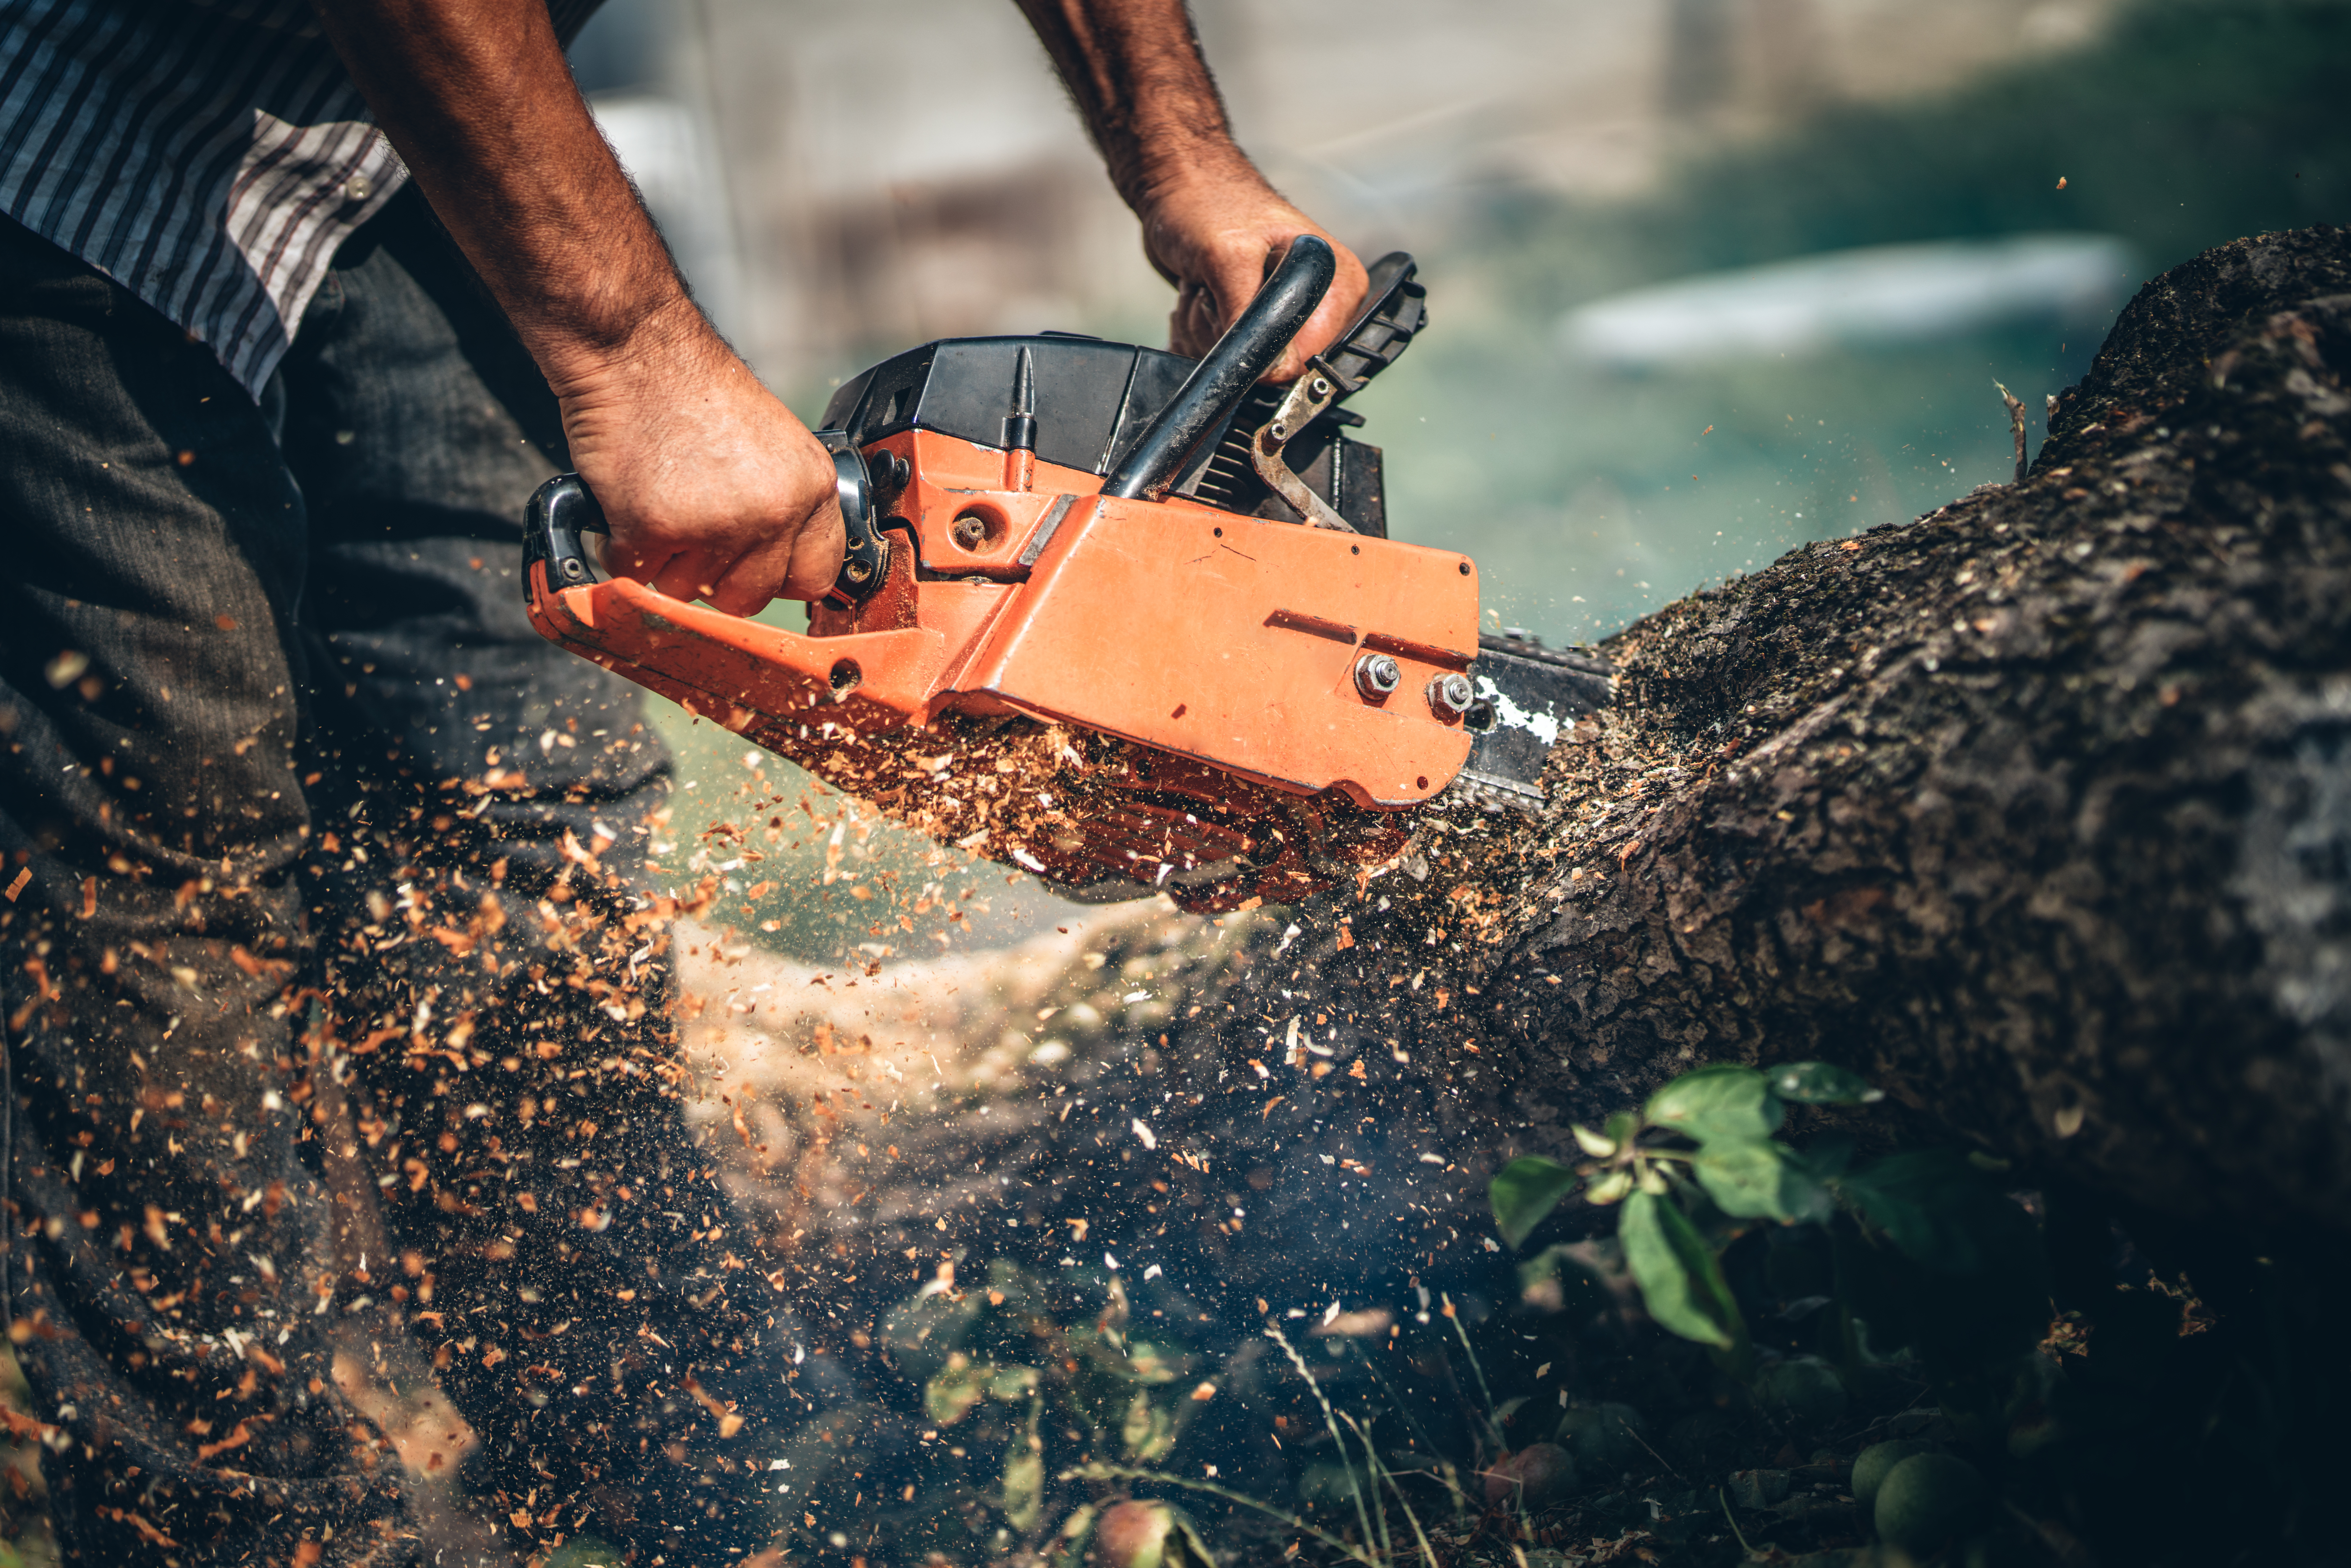 How To Troubleshoot And Adjust The Oiler On A Chainsaw | Hunker